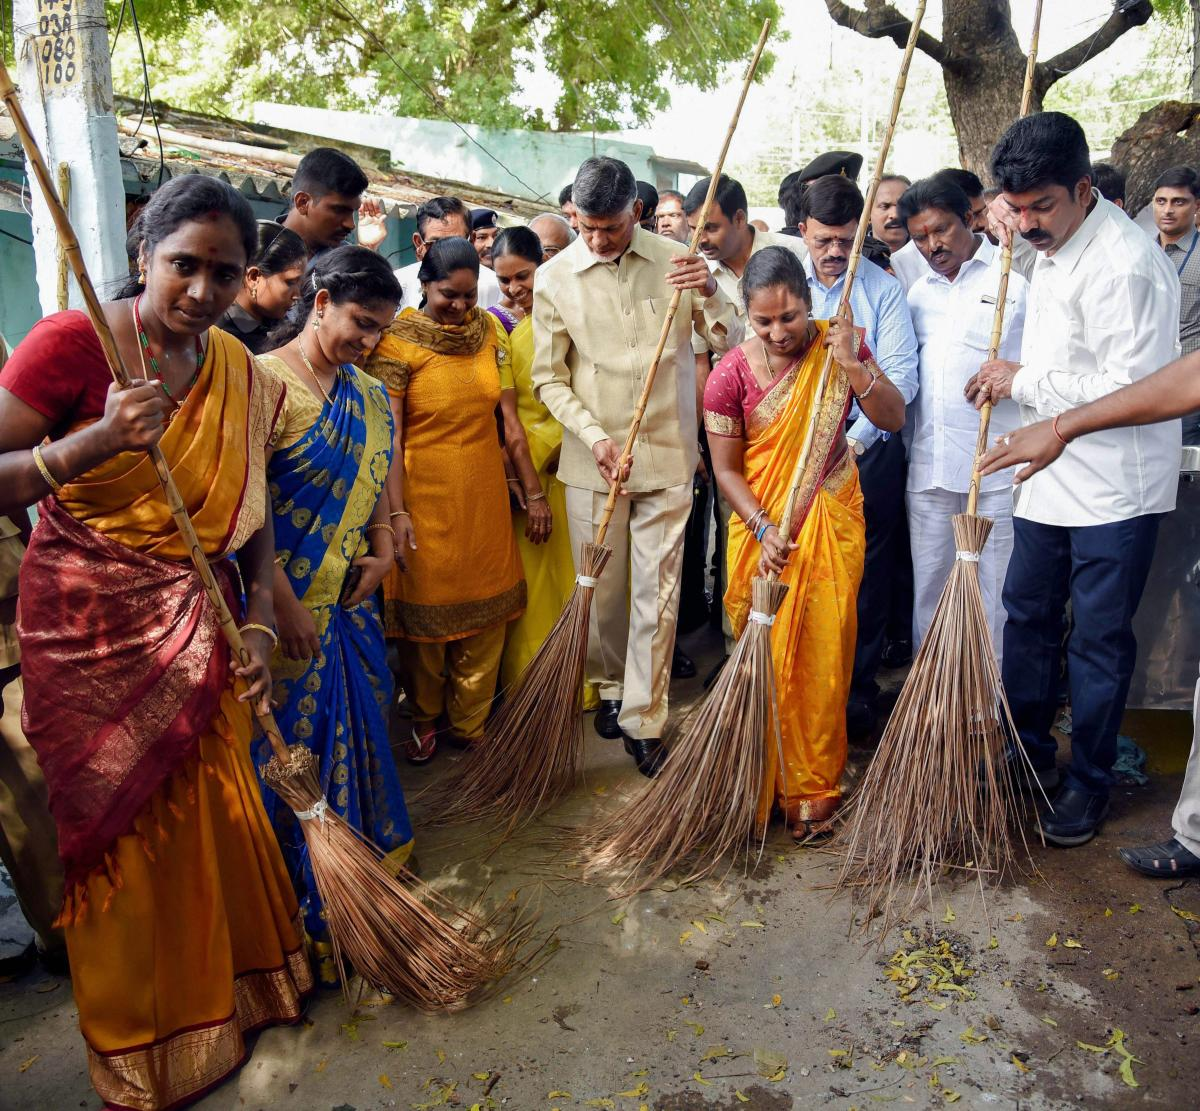 Andhra Pradesh Chief Minister Chandrababu Naidu participates in a cleanliness drive on the occasion of 'Gandhi Jayanti', in Vijayawada, on Tuesday. PTI